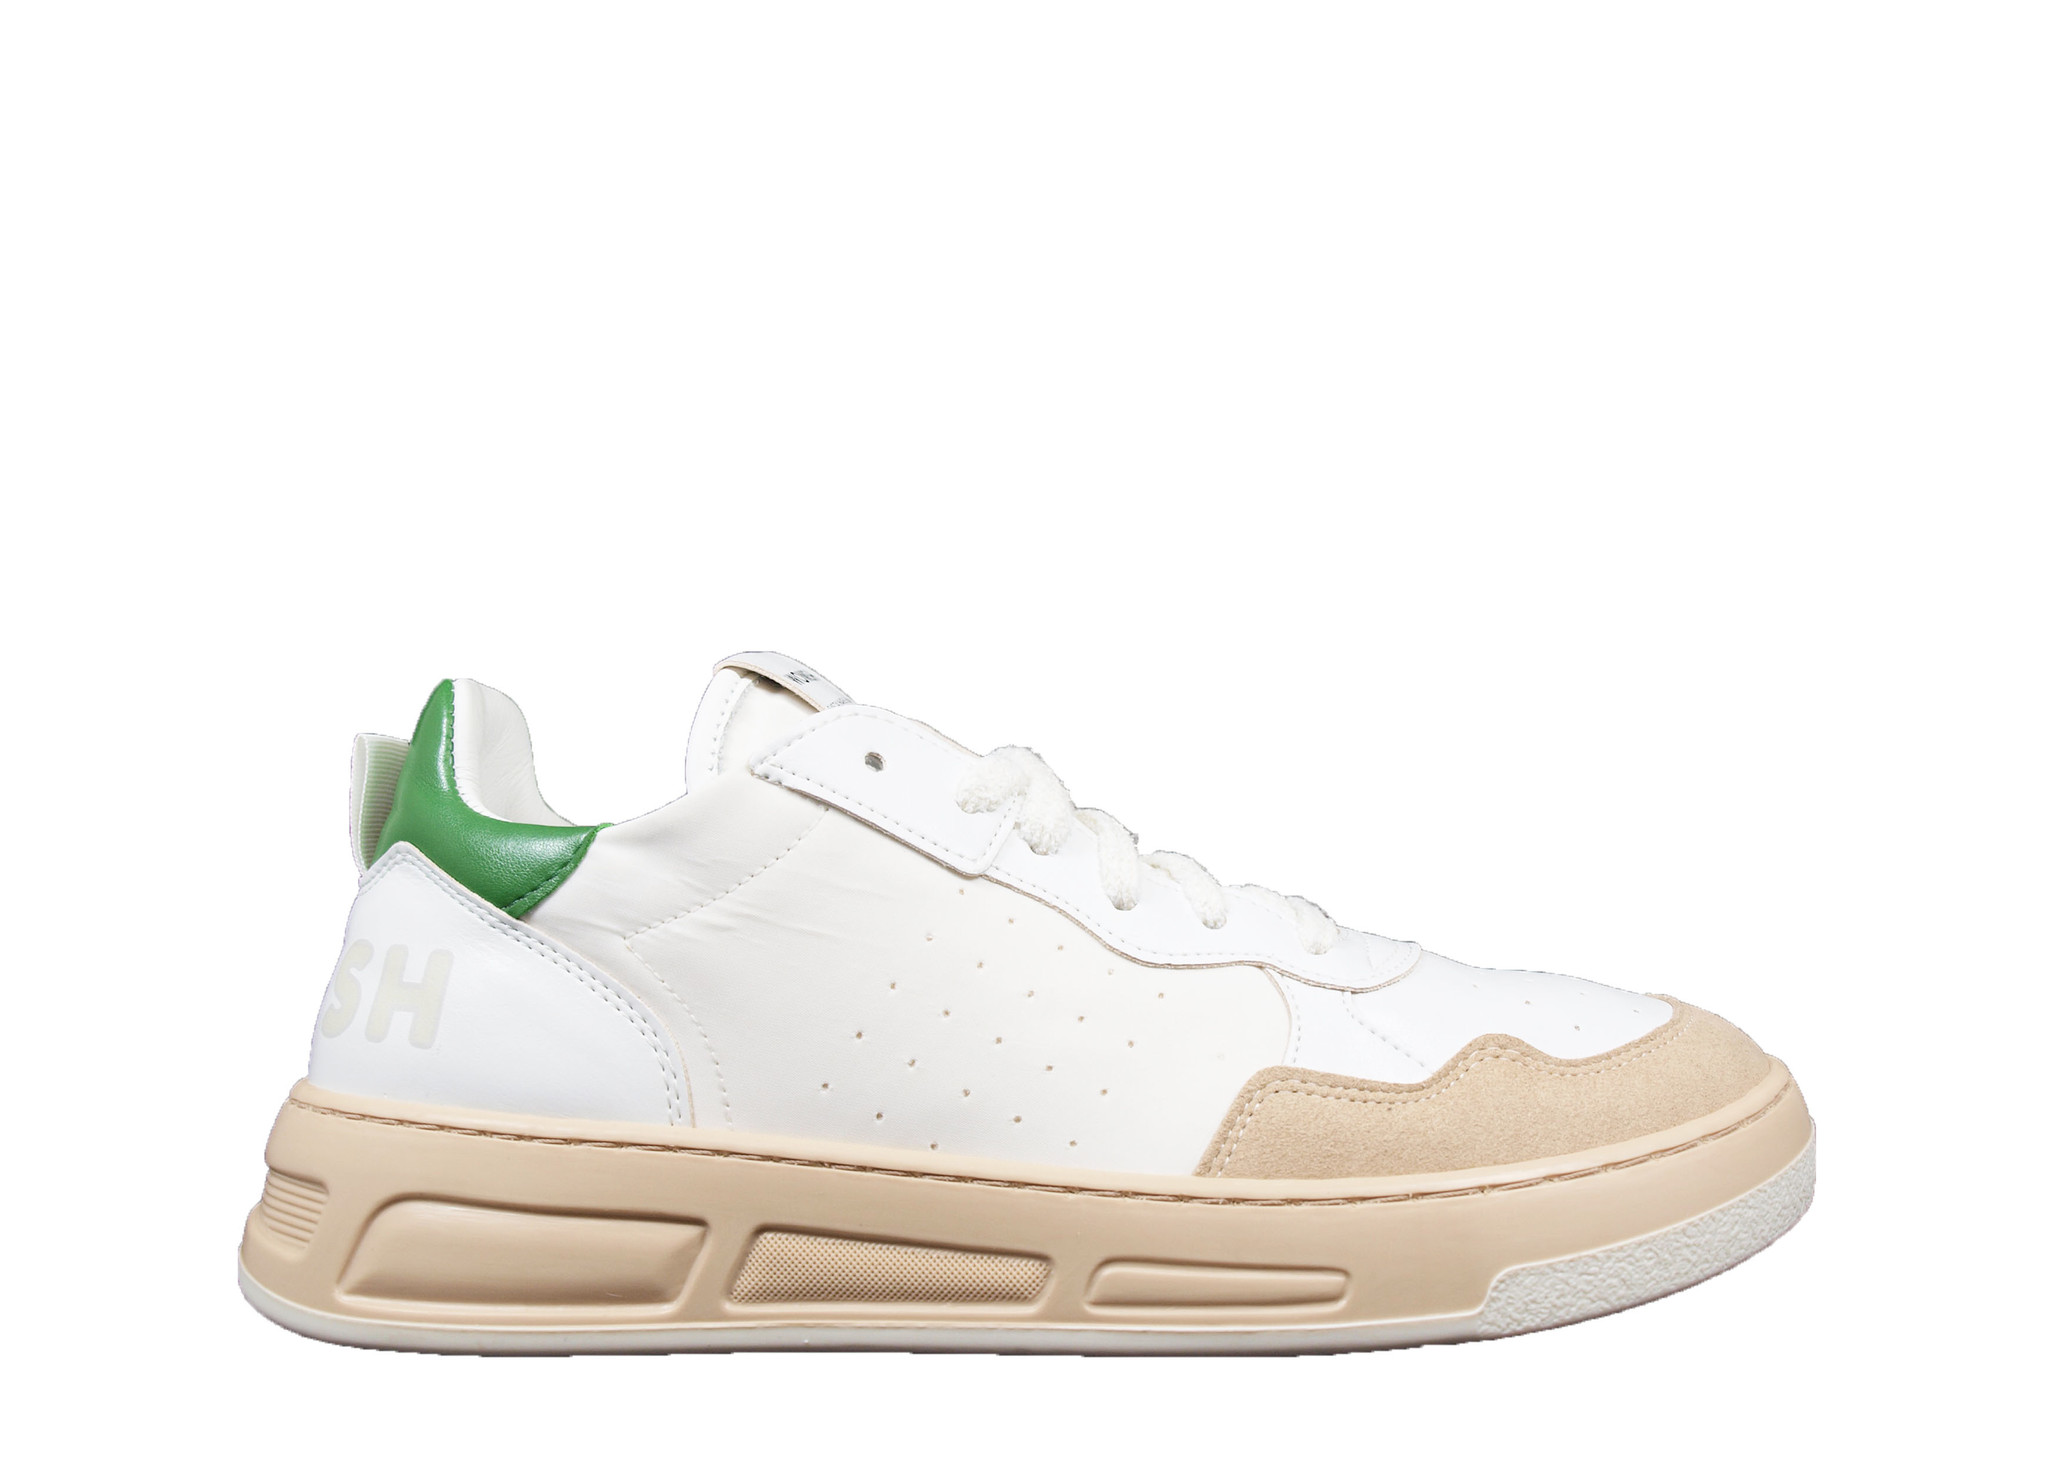 WOMSH WOMSH Sustainable Sneaker VHY211062 Wit/Groen